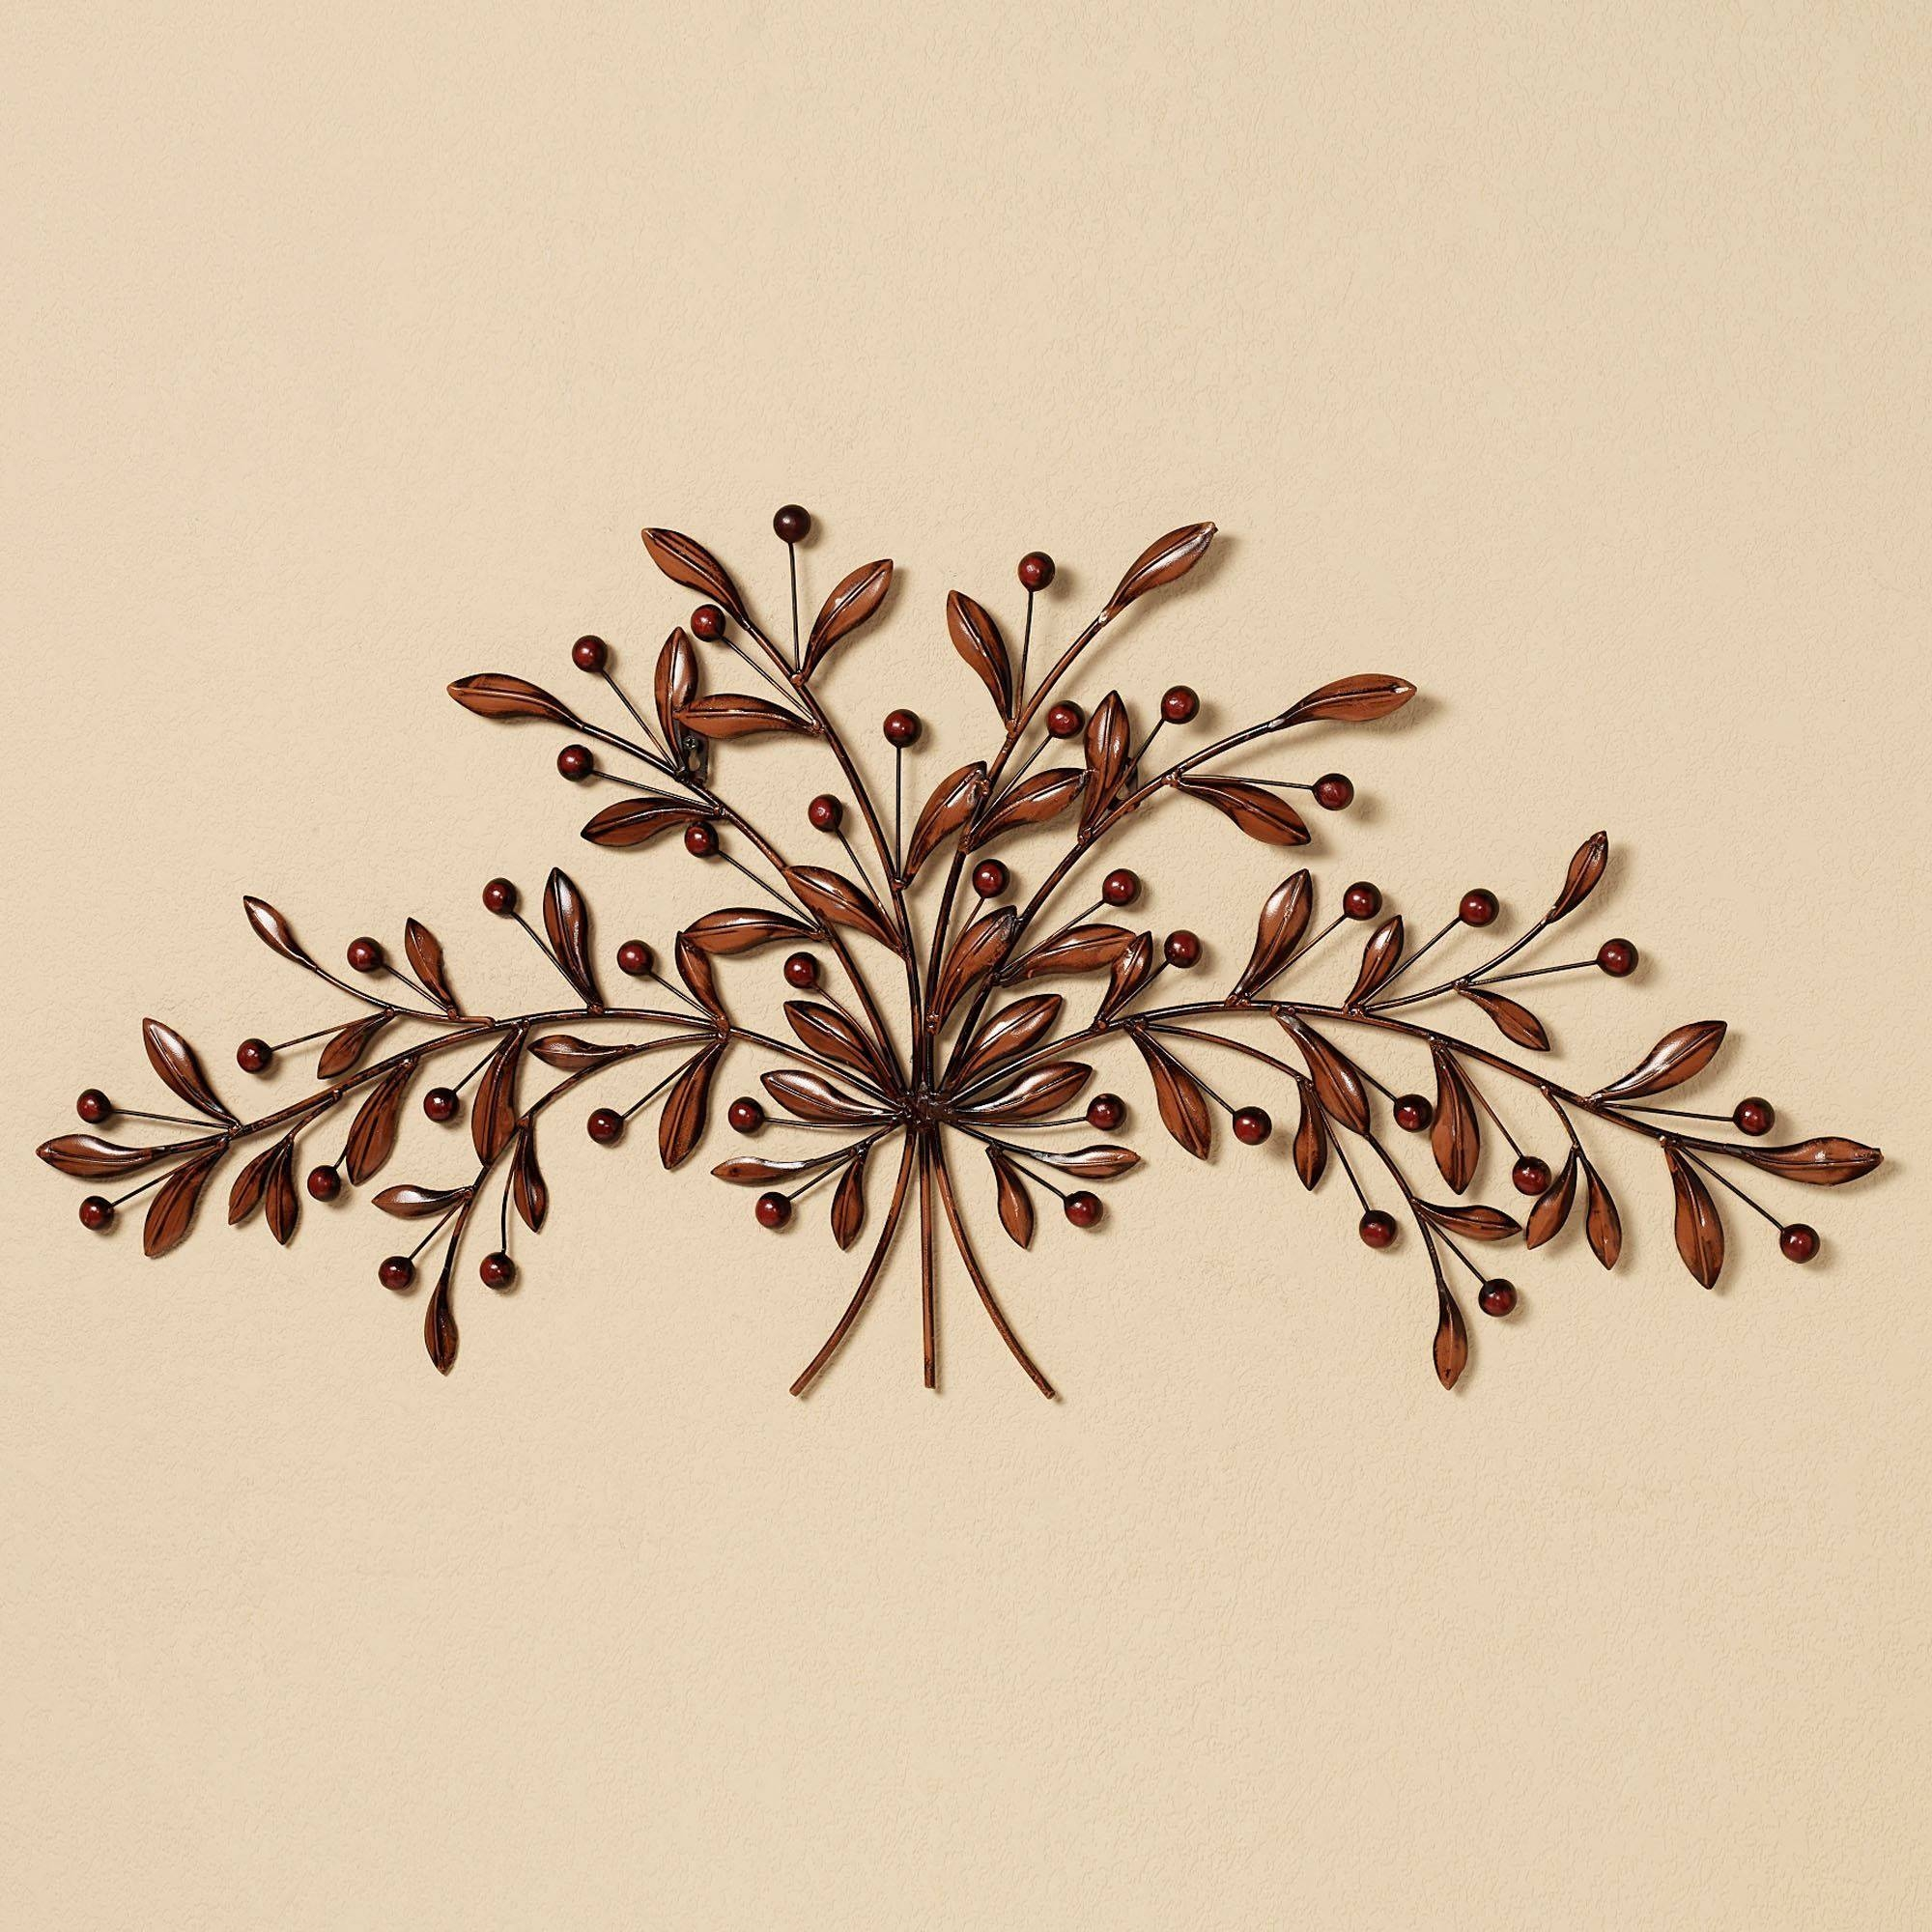 Cantabria Branch Metal Wall Art Spray For Best And Newest Metal Wall Art Trees And Leaves (View 11 of 20)